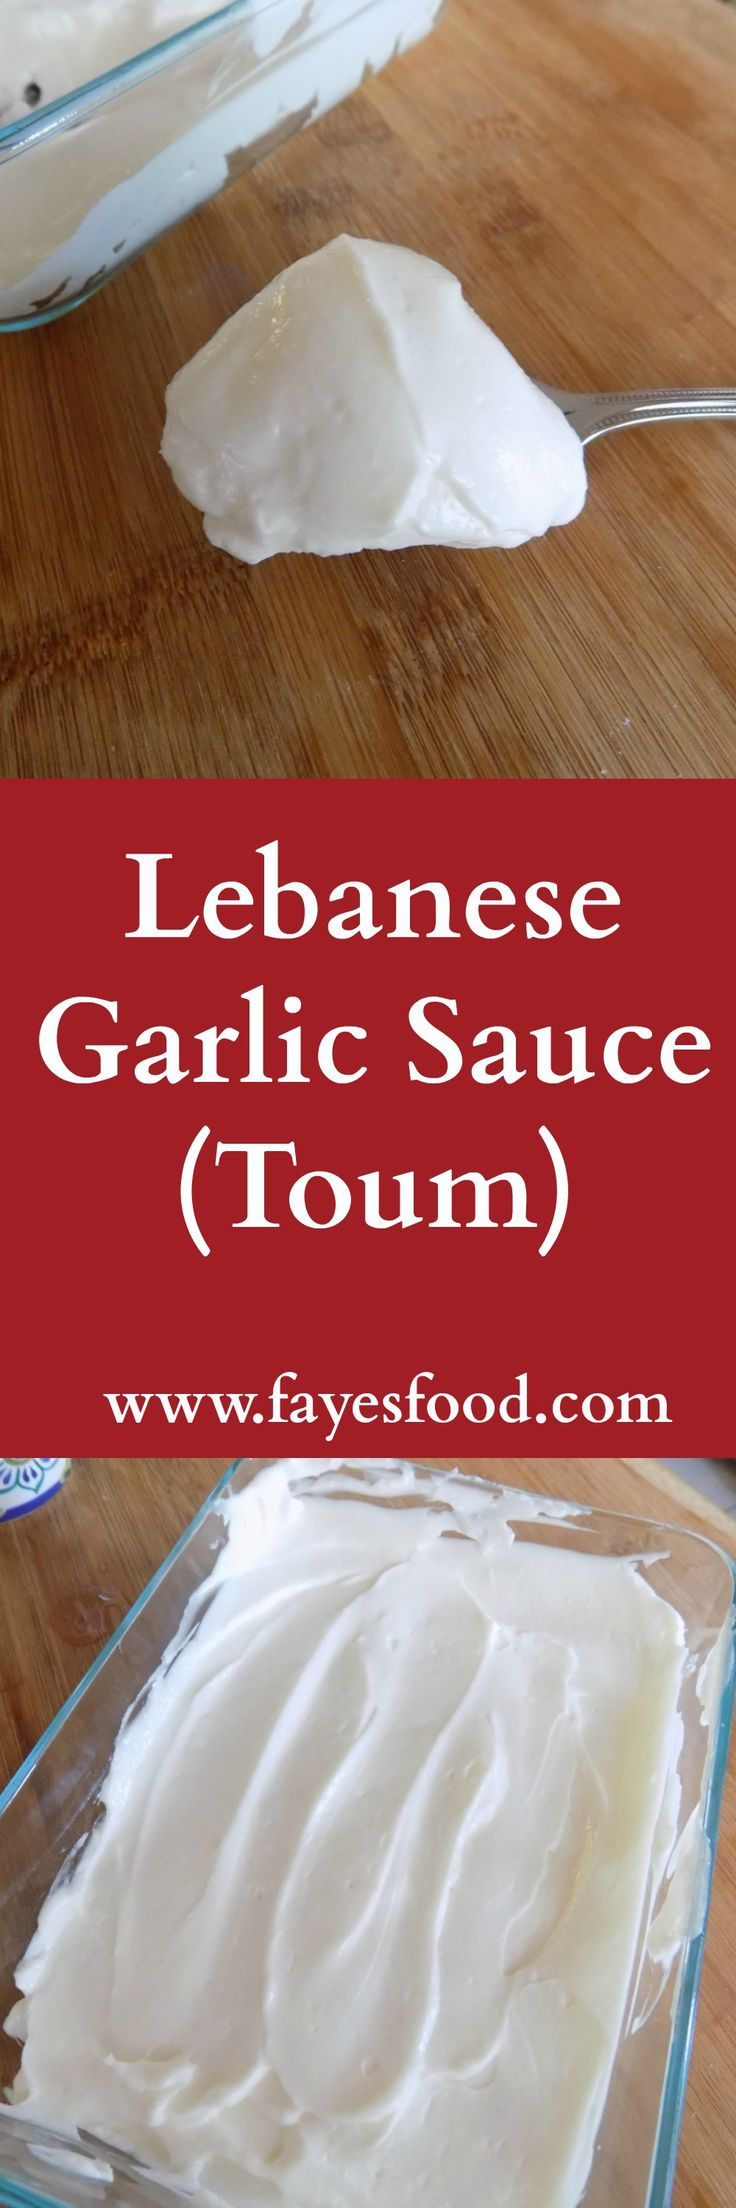 Delicious Lebanese garlic sauce, also known as toum. Great with chicken, meat, fries and pretty much anything.  #garlicsauce #lebaneserecipes #toumrecipe